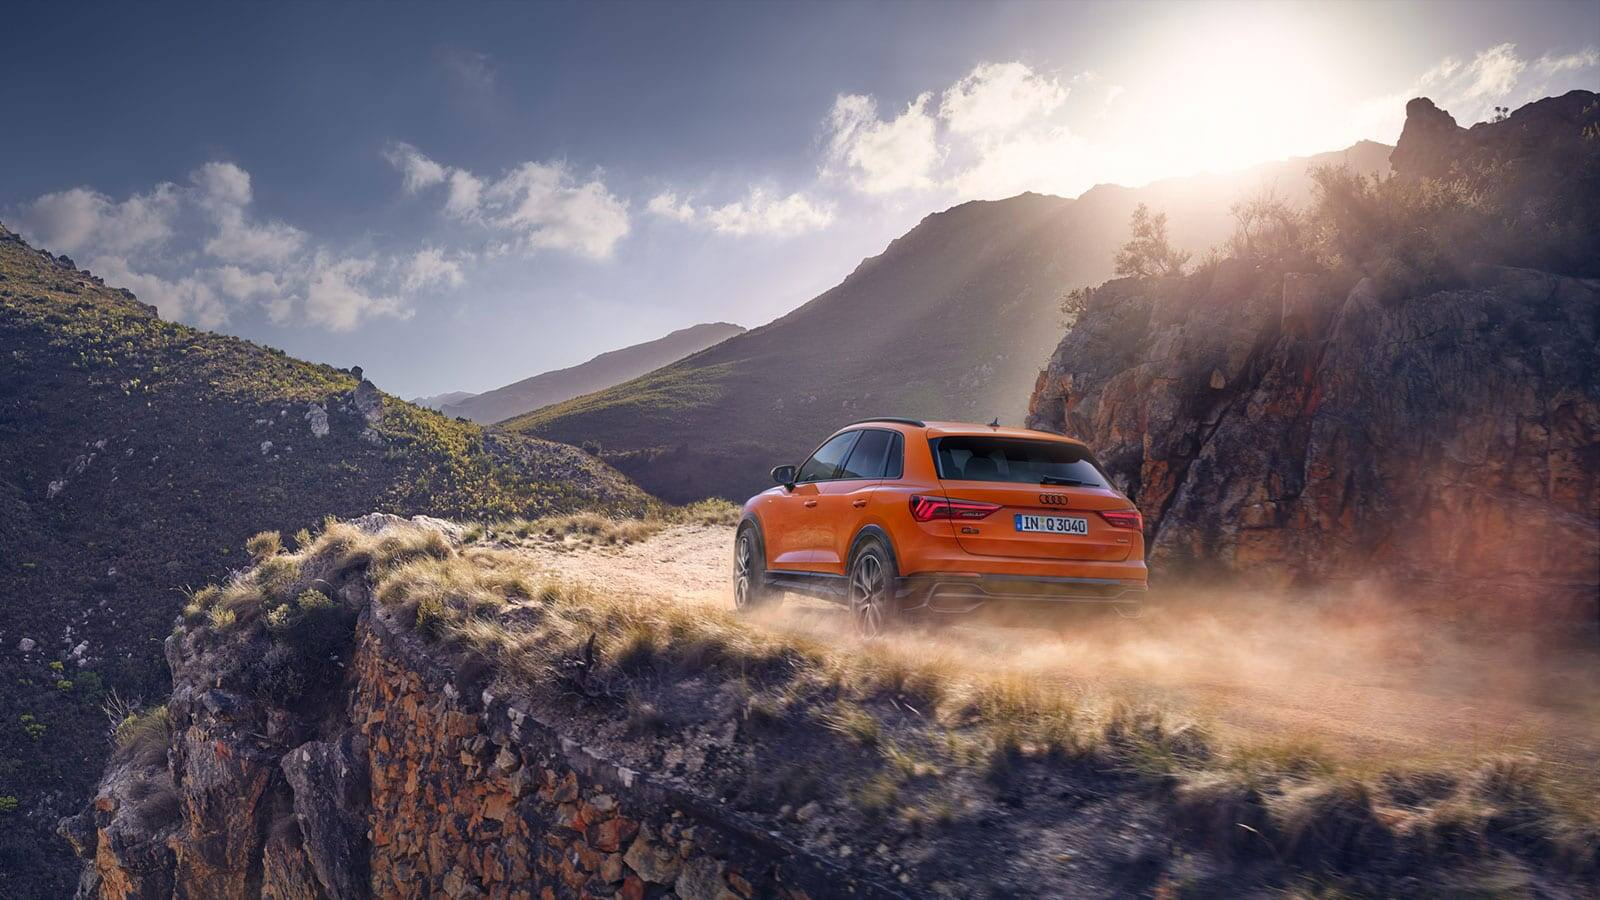 The new dynamic Audi Q3